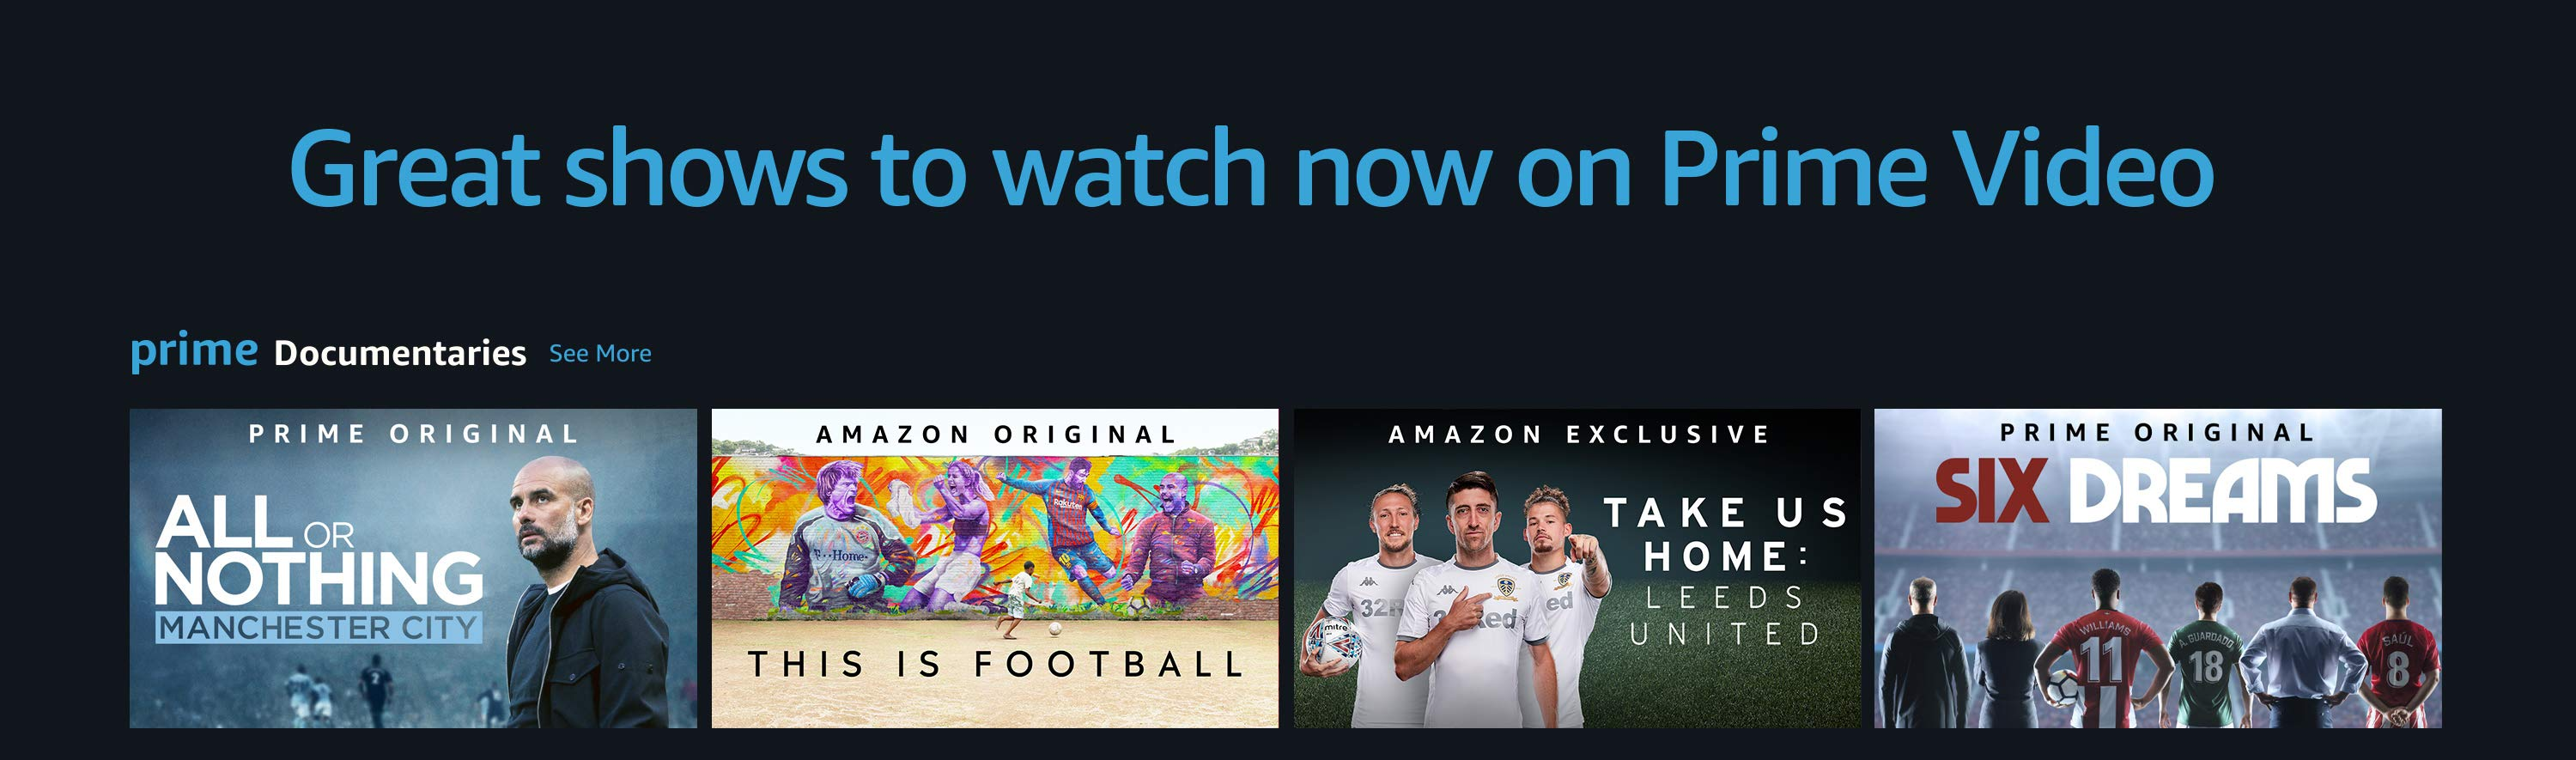 Watch shows on Prime Video